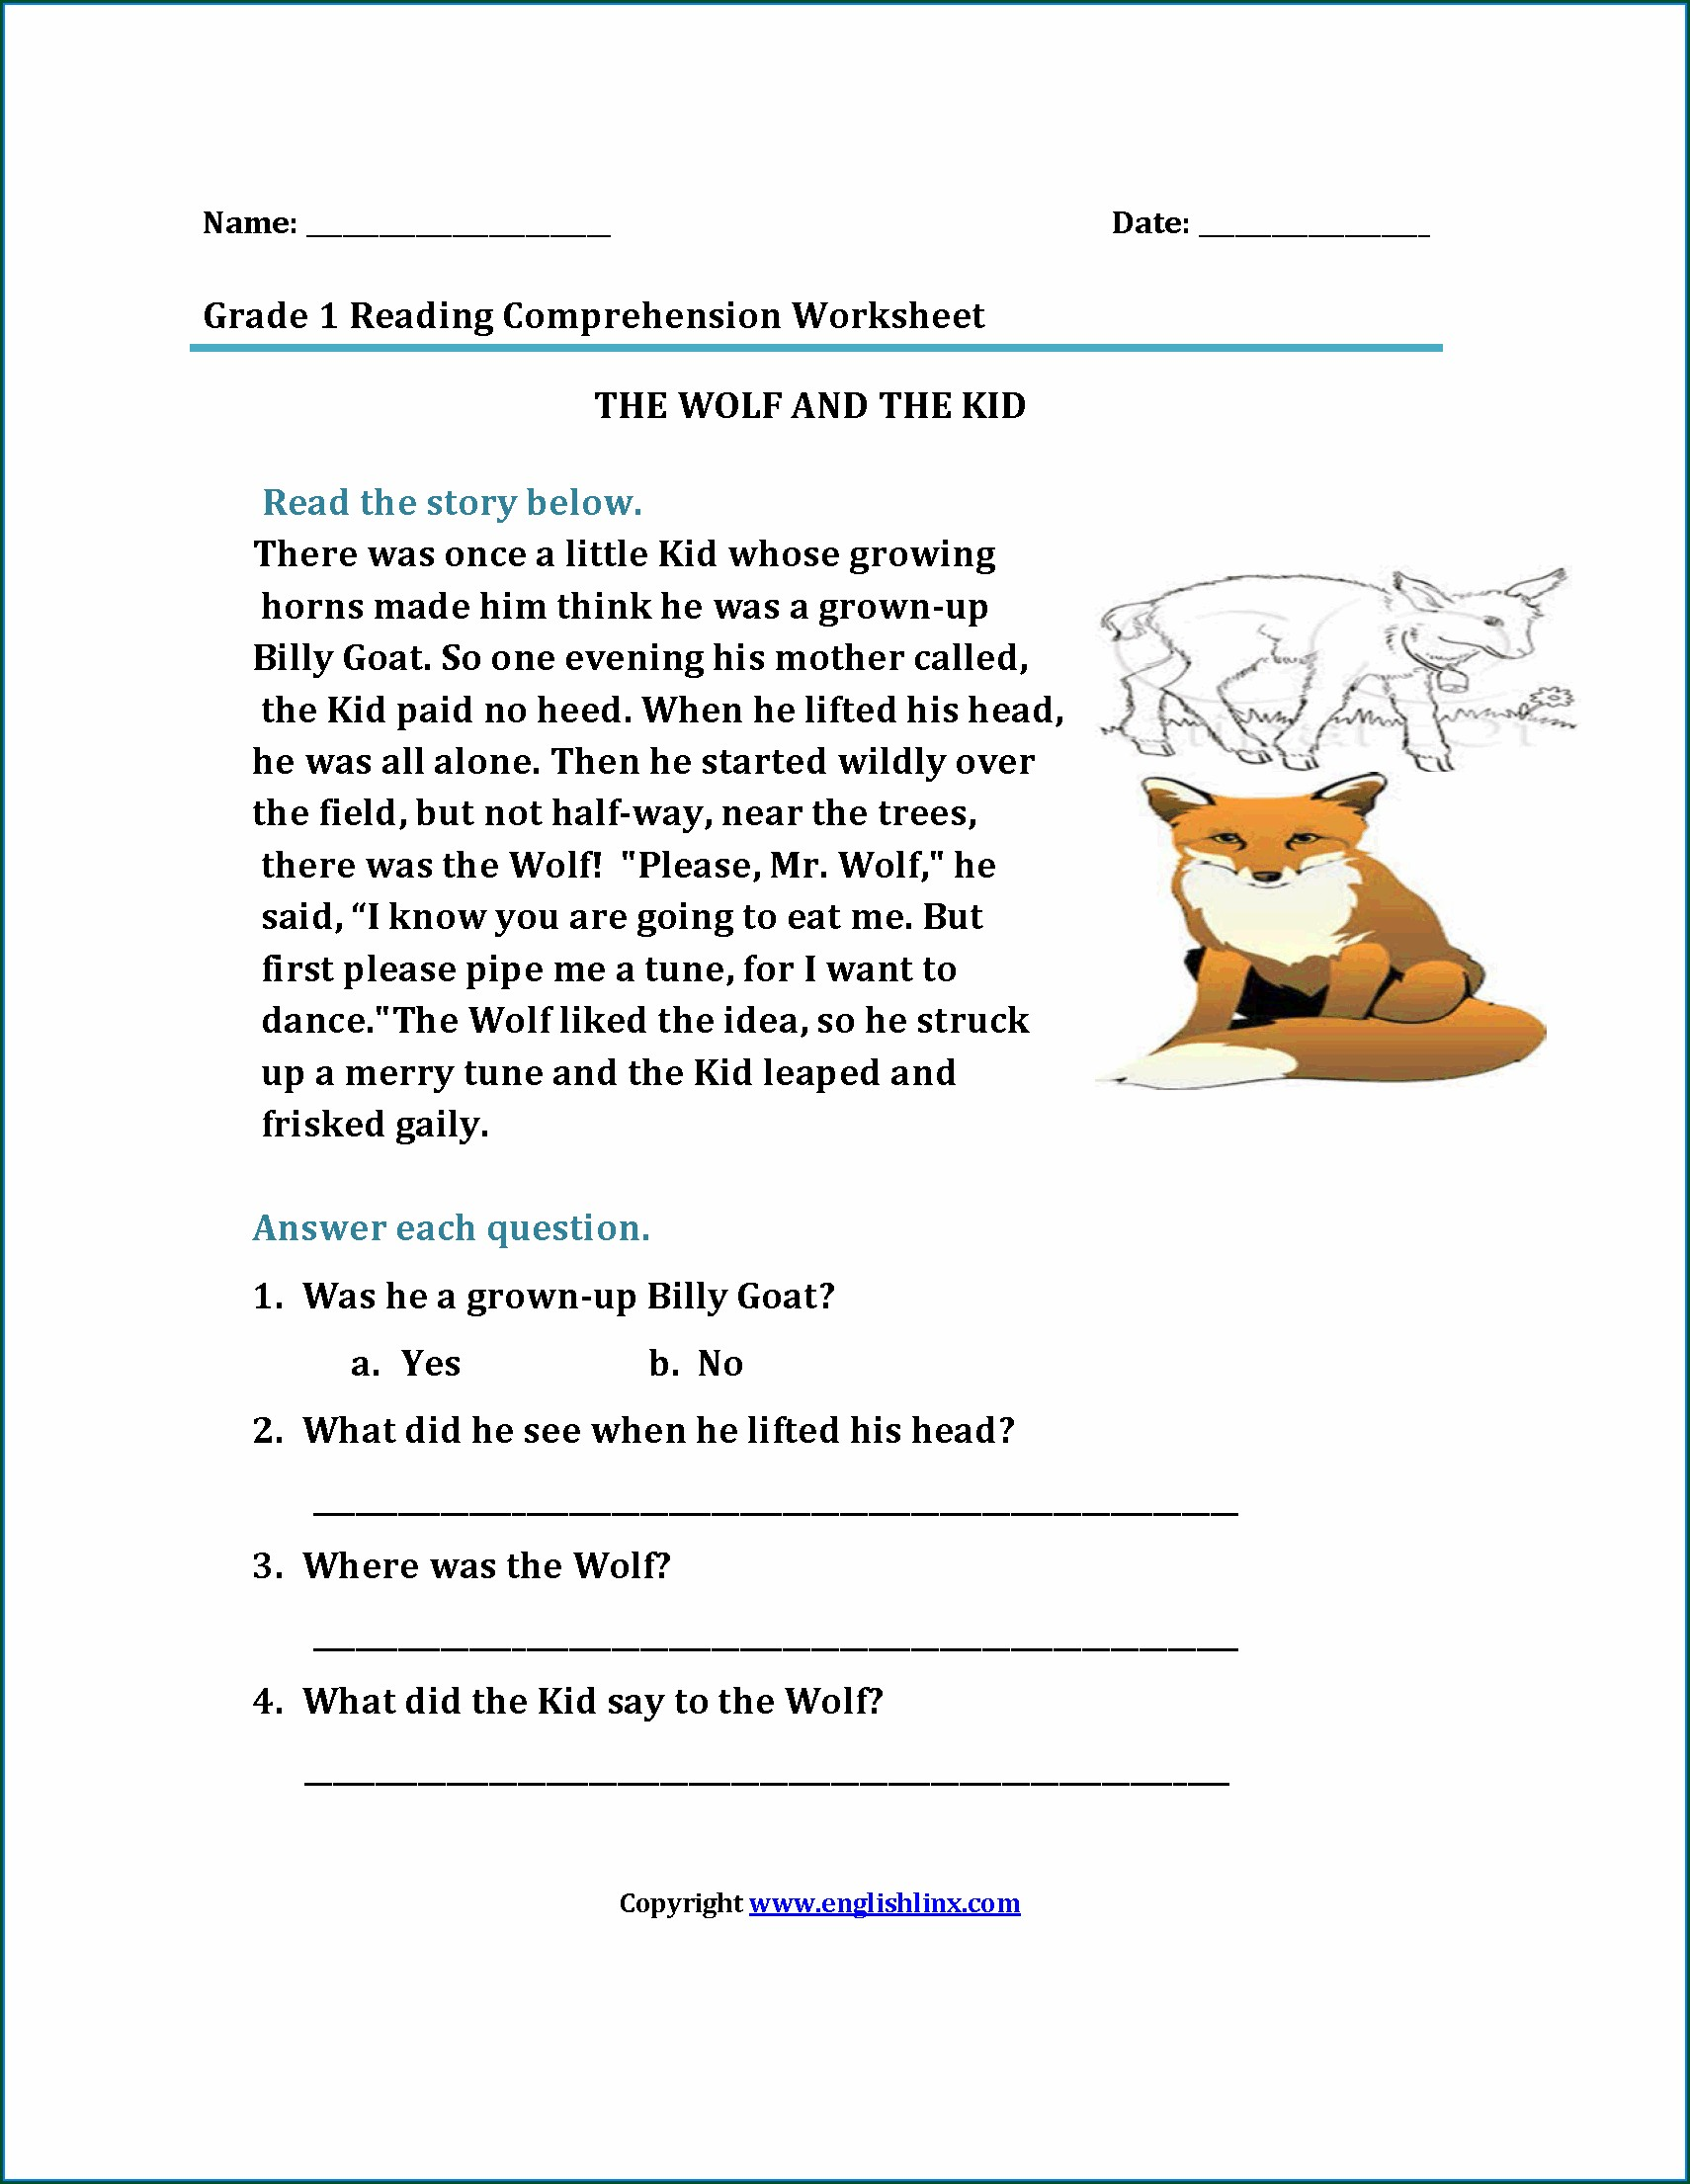 Printable Reading Comprehension Worksheets For 4th Grade